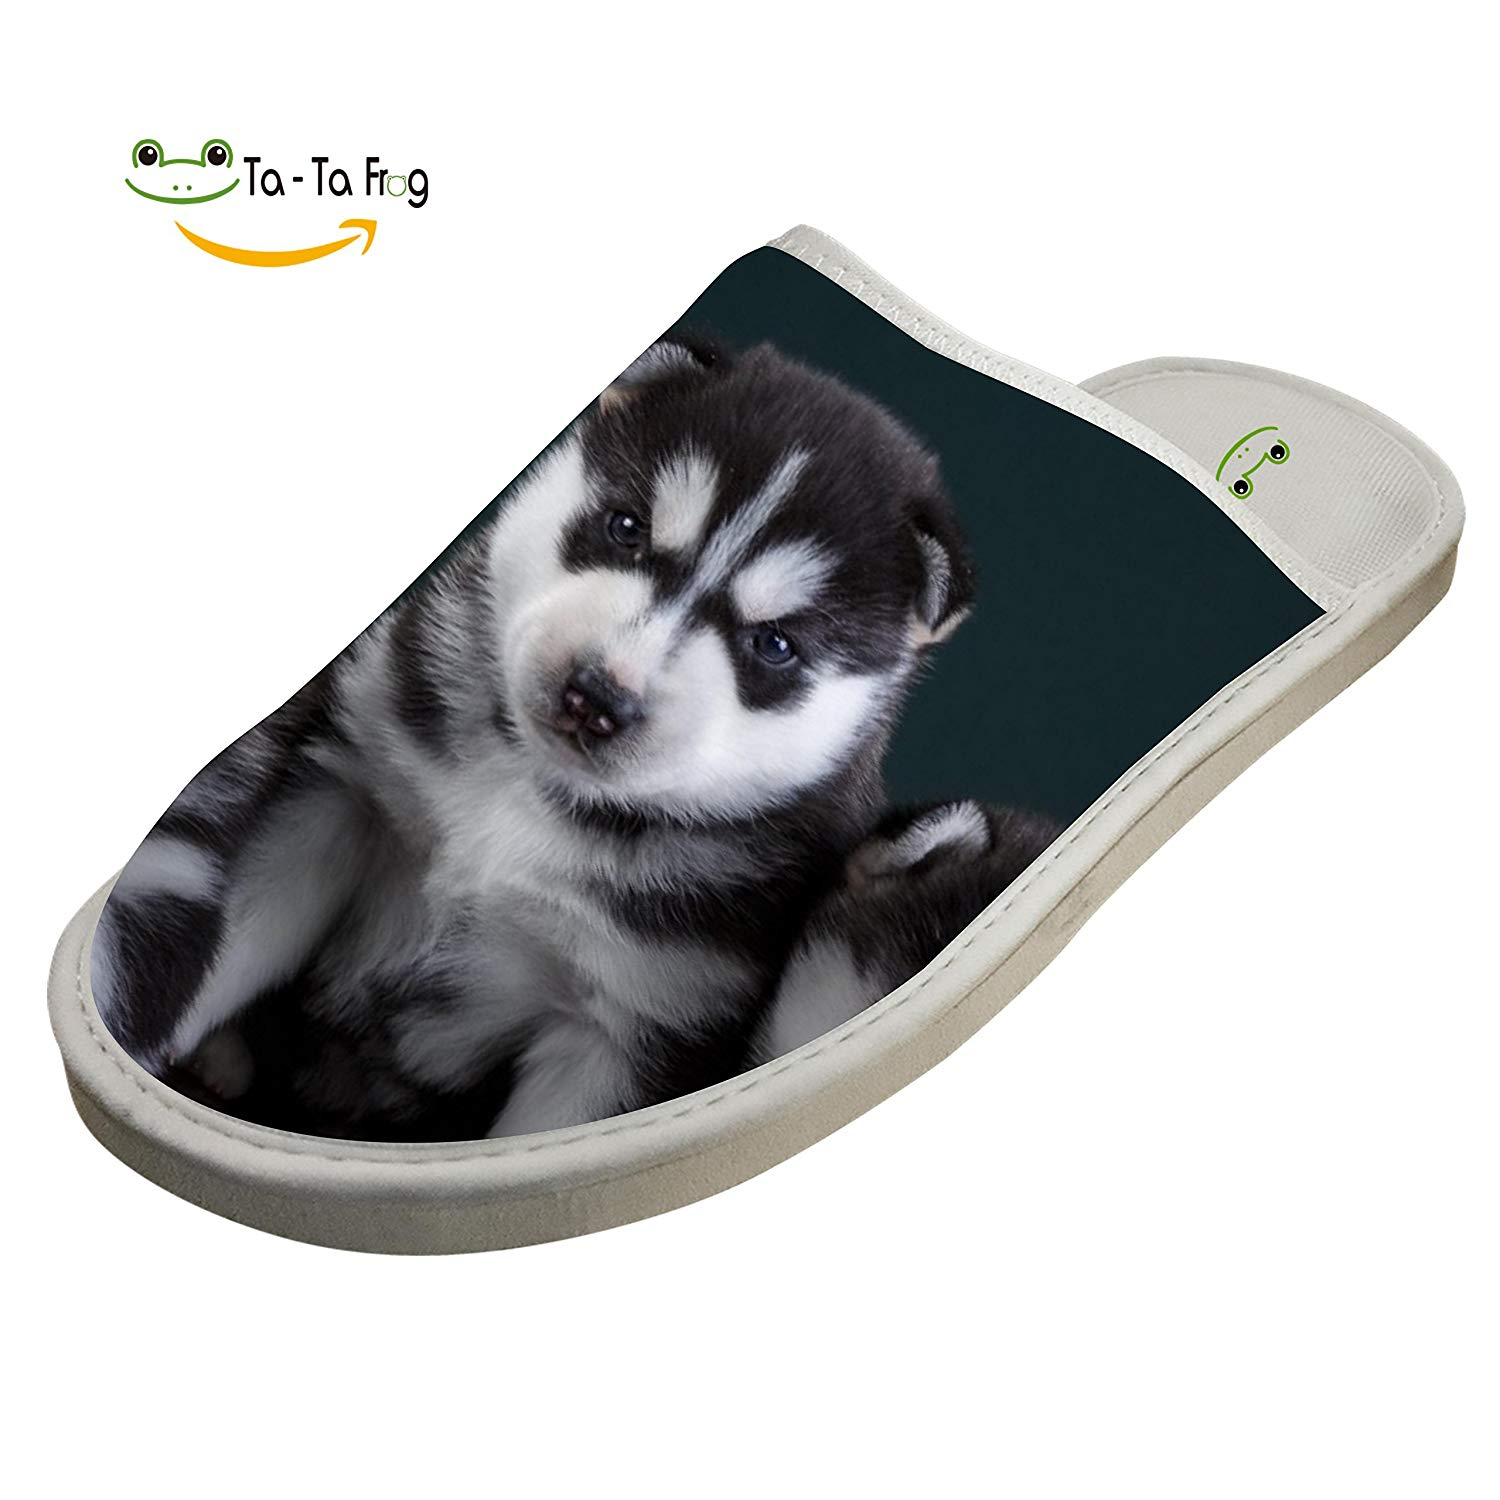 Getime Cartoon 3D Husky Dog Cotton Slippers Warm Shoes